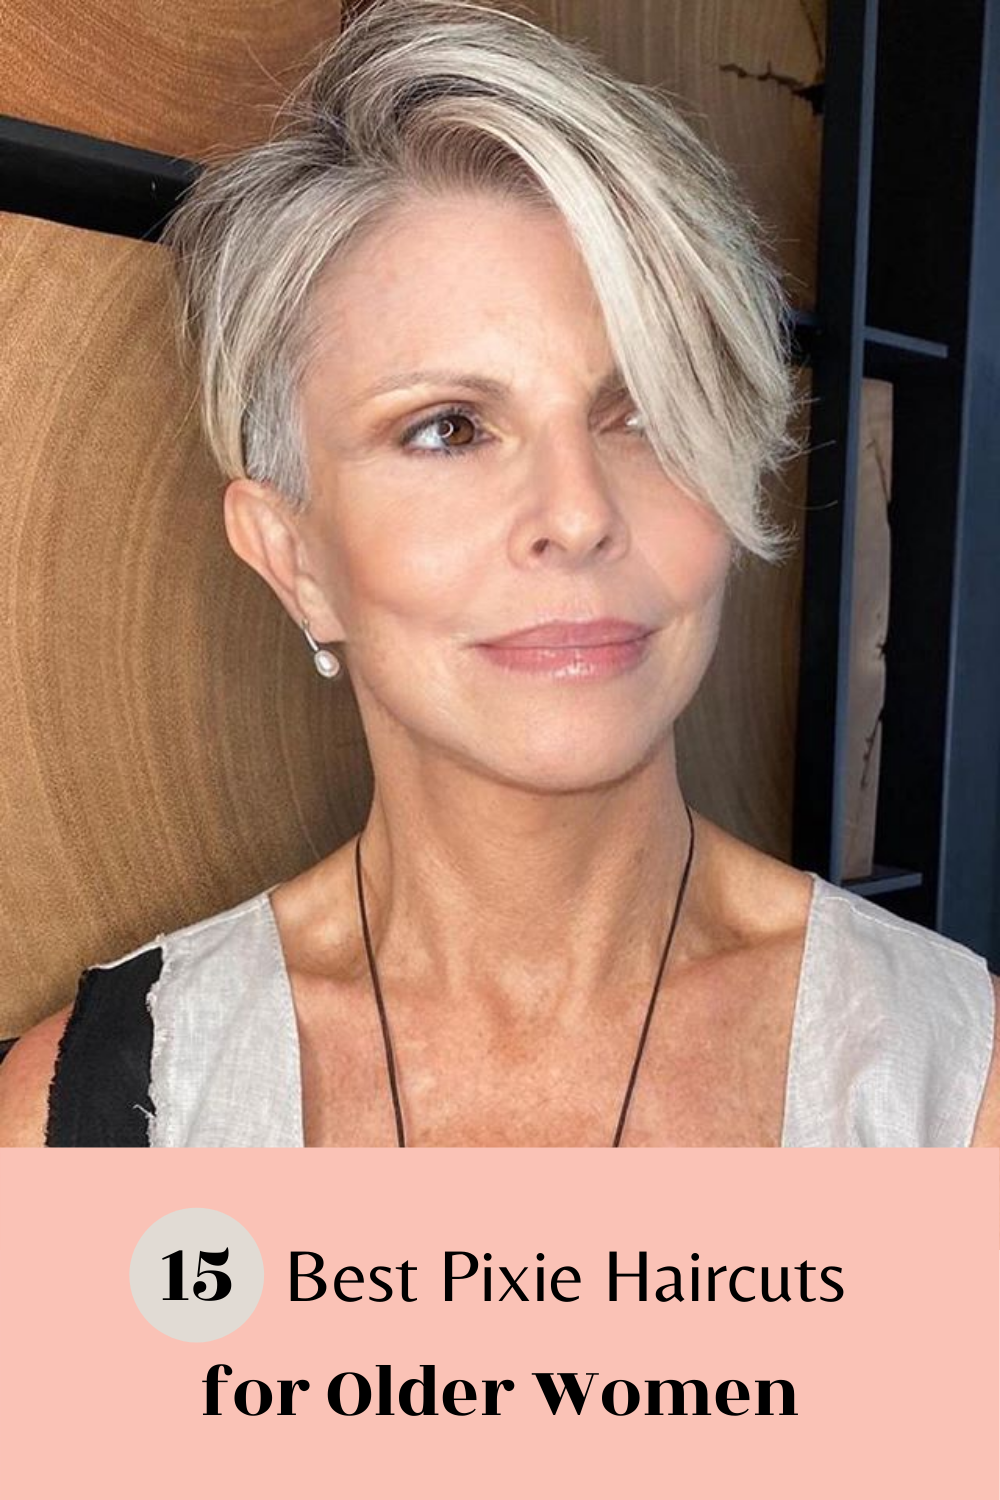 15 Best Pixie Haircuts for Older Women